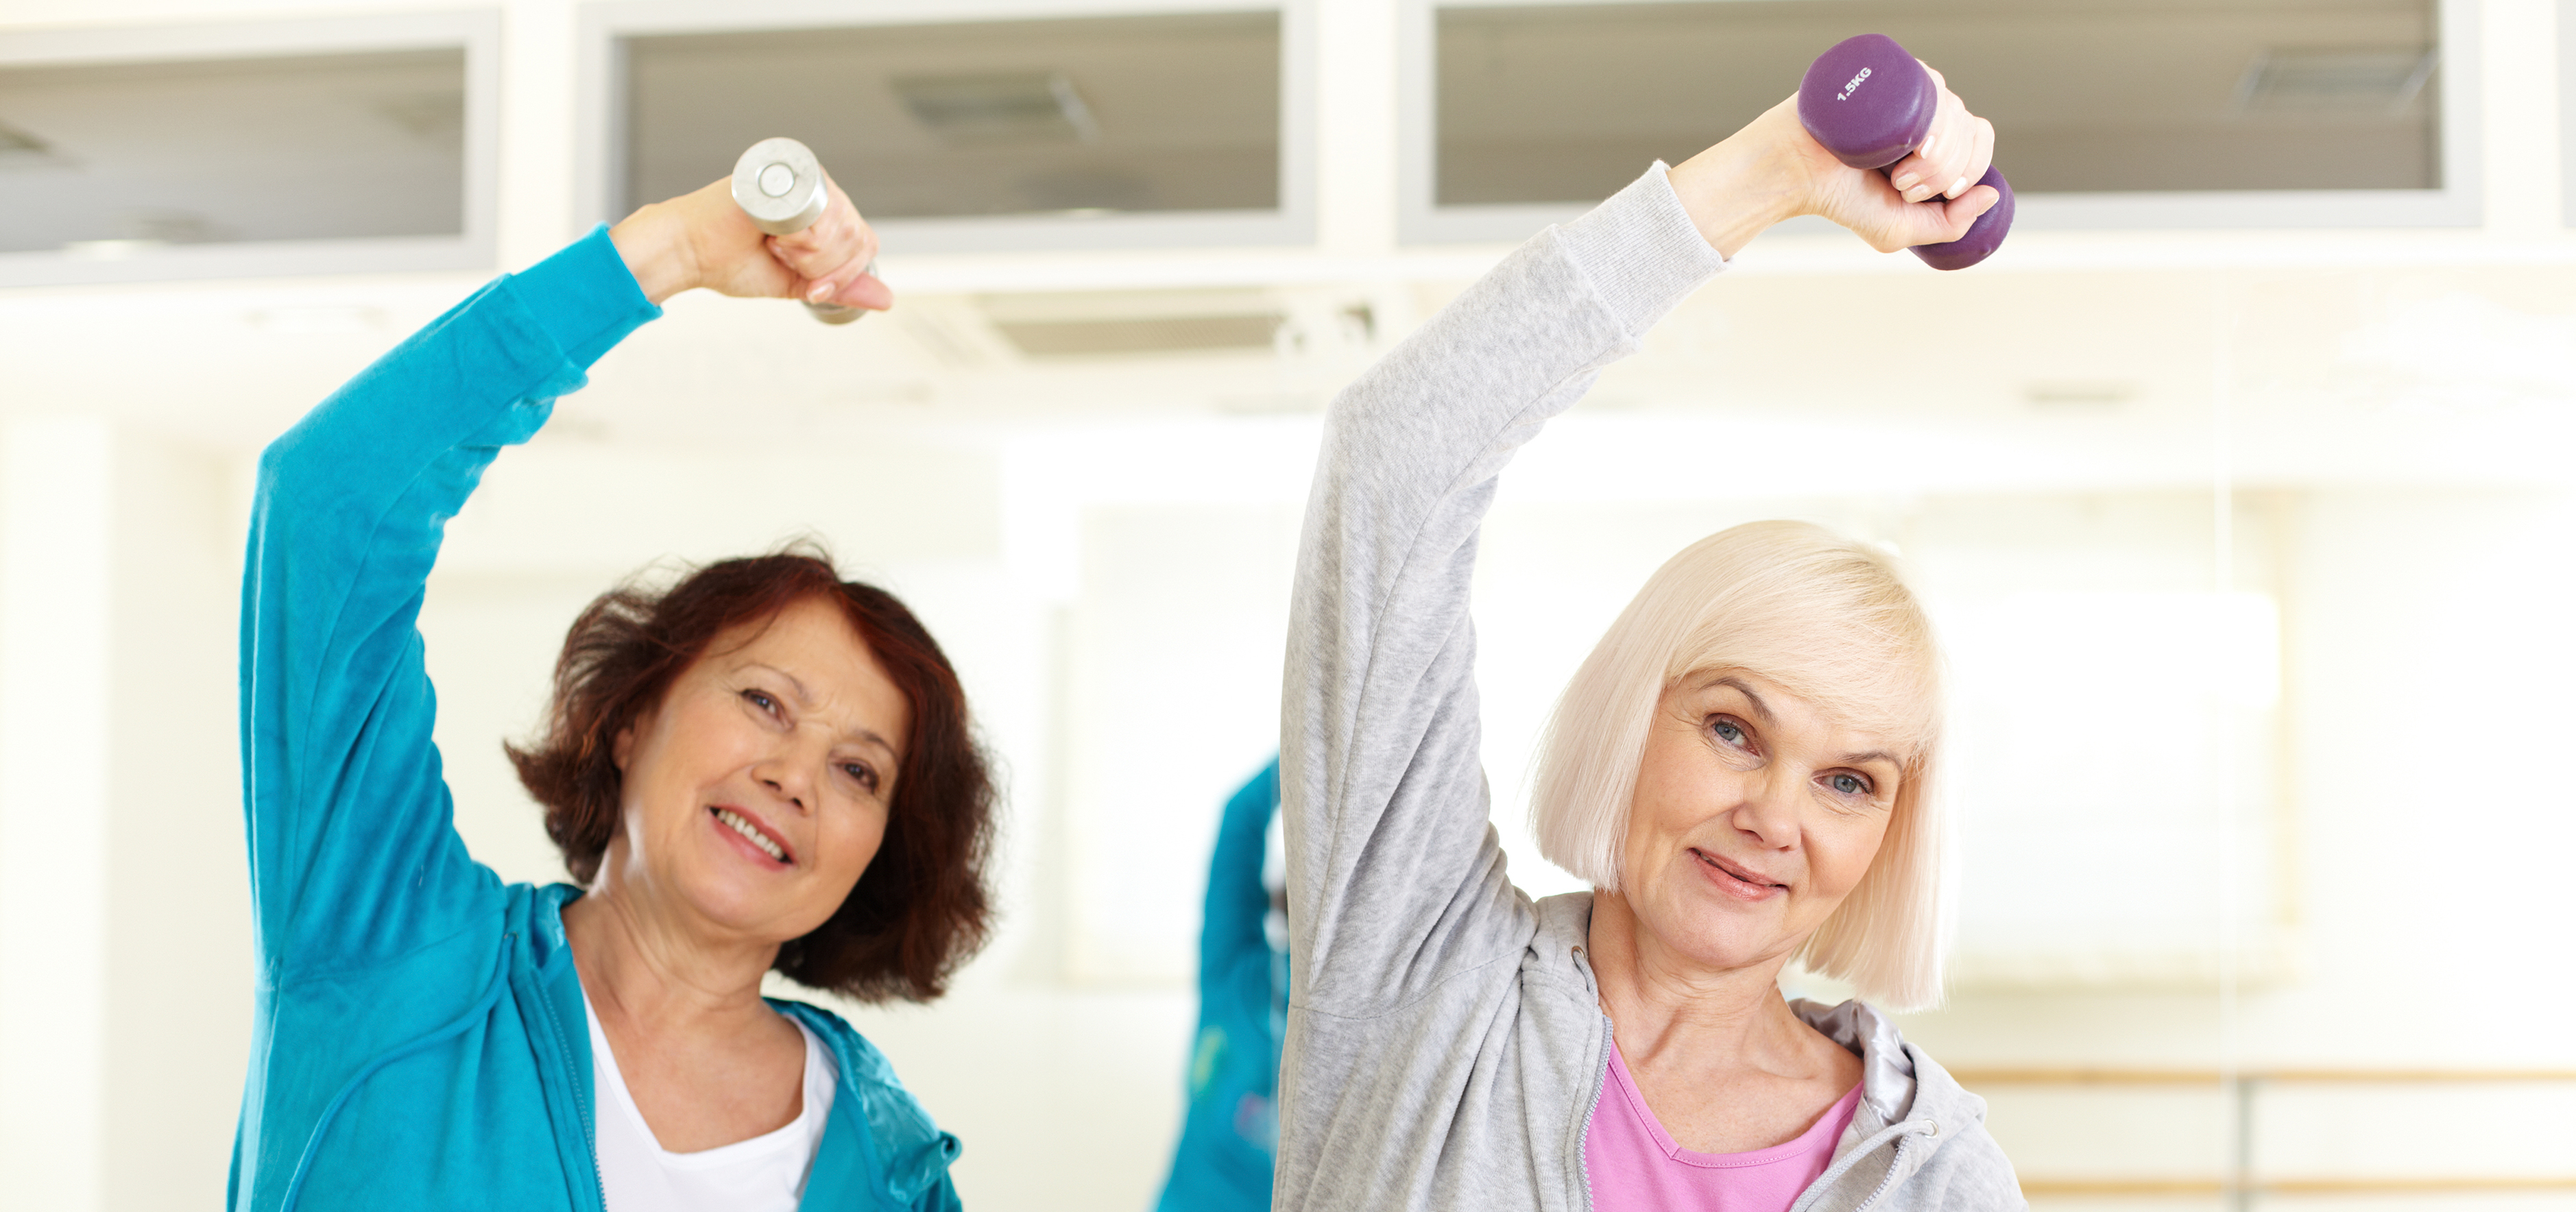 Older women exercising with hand weights